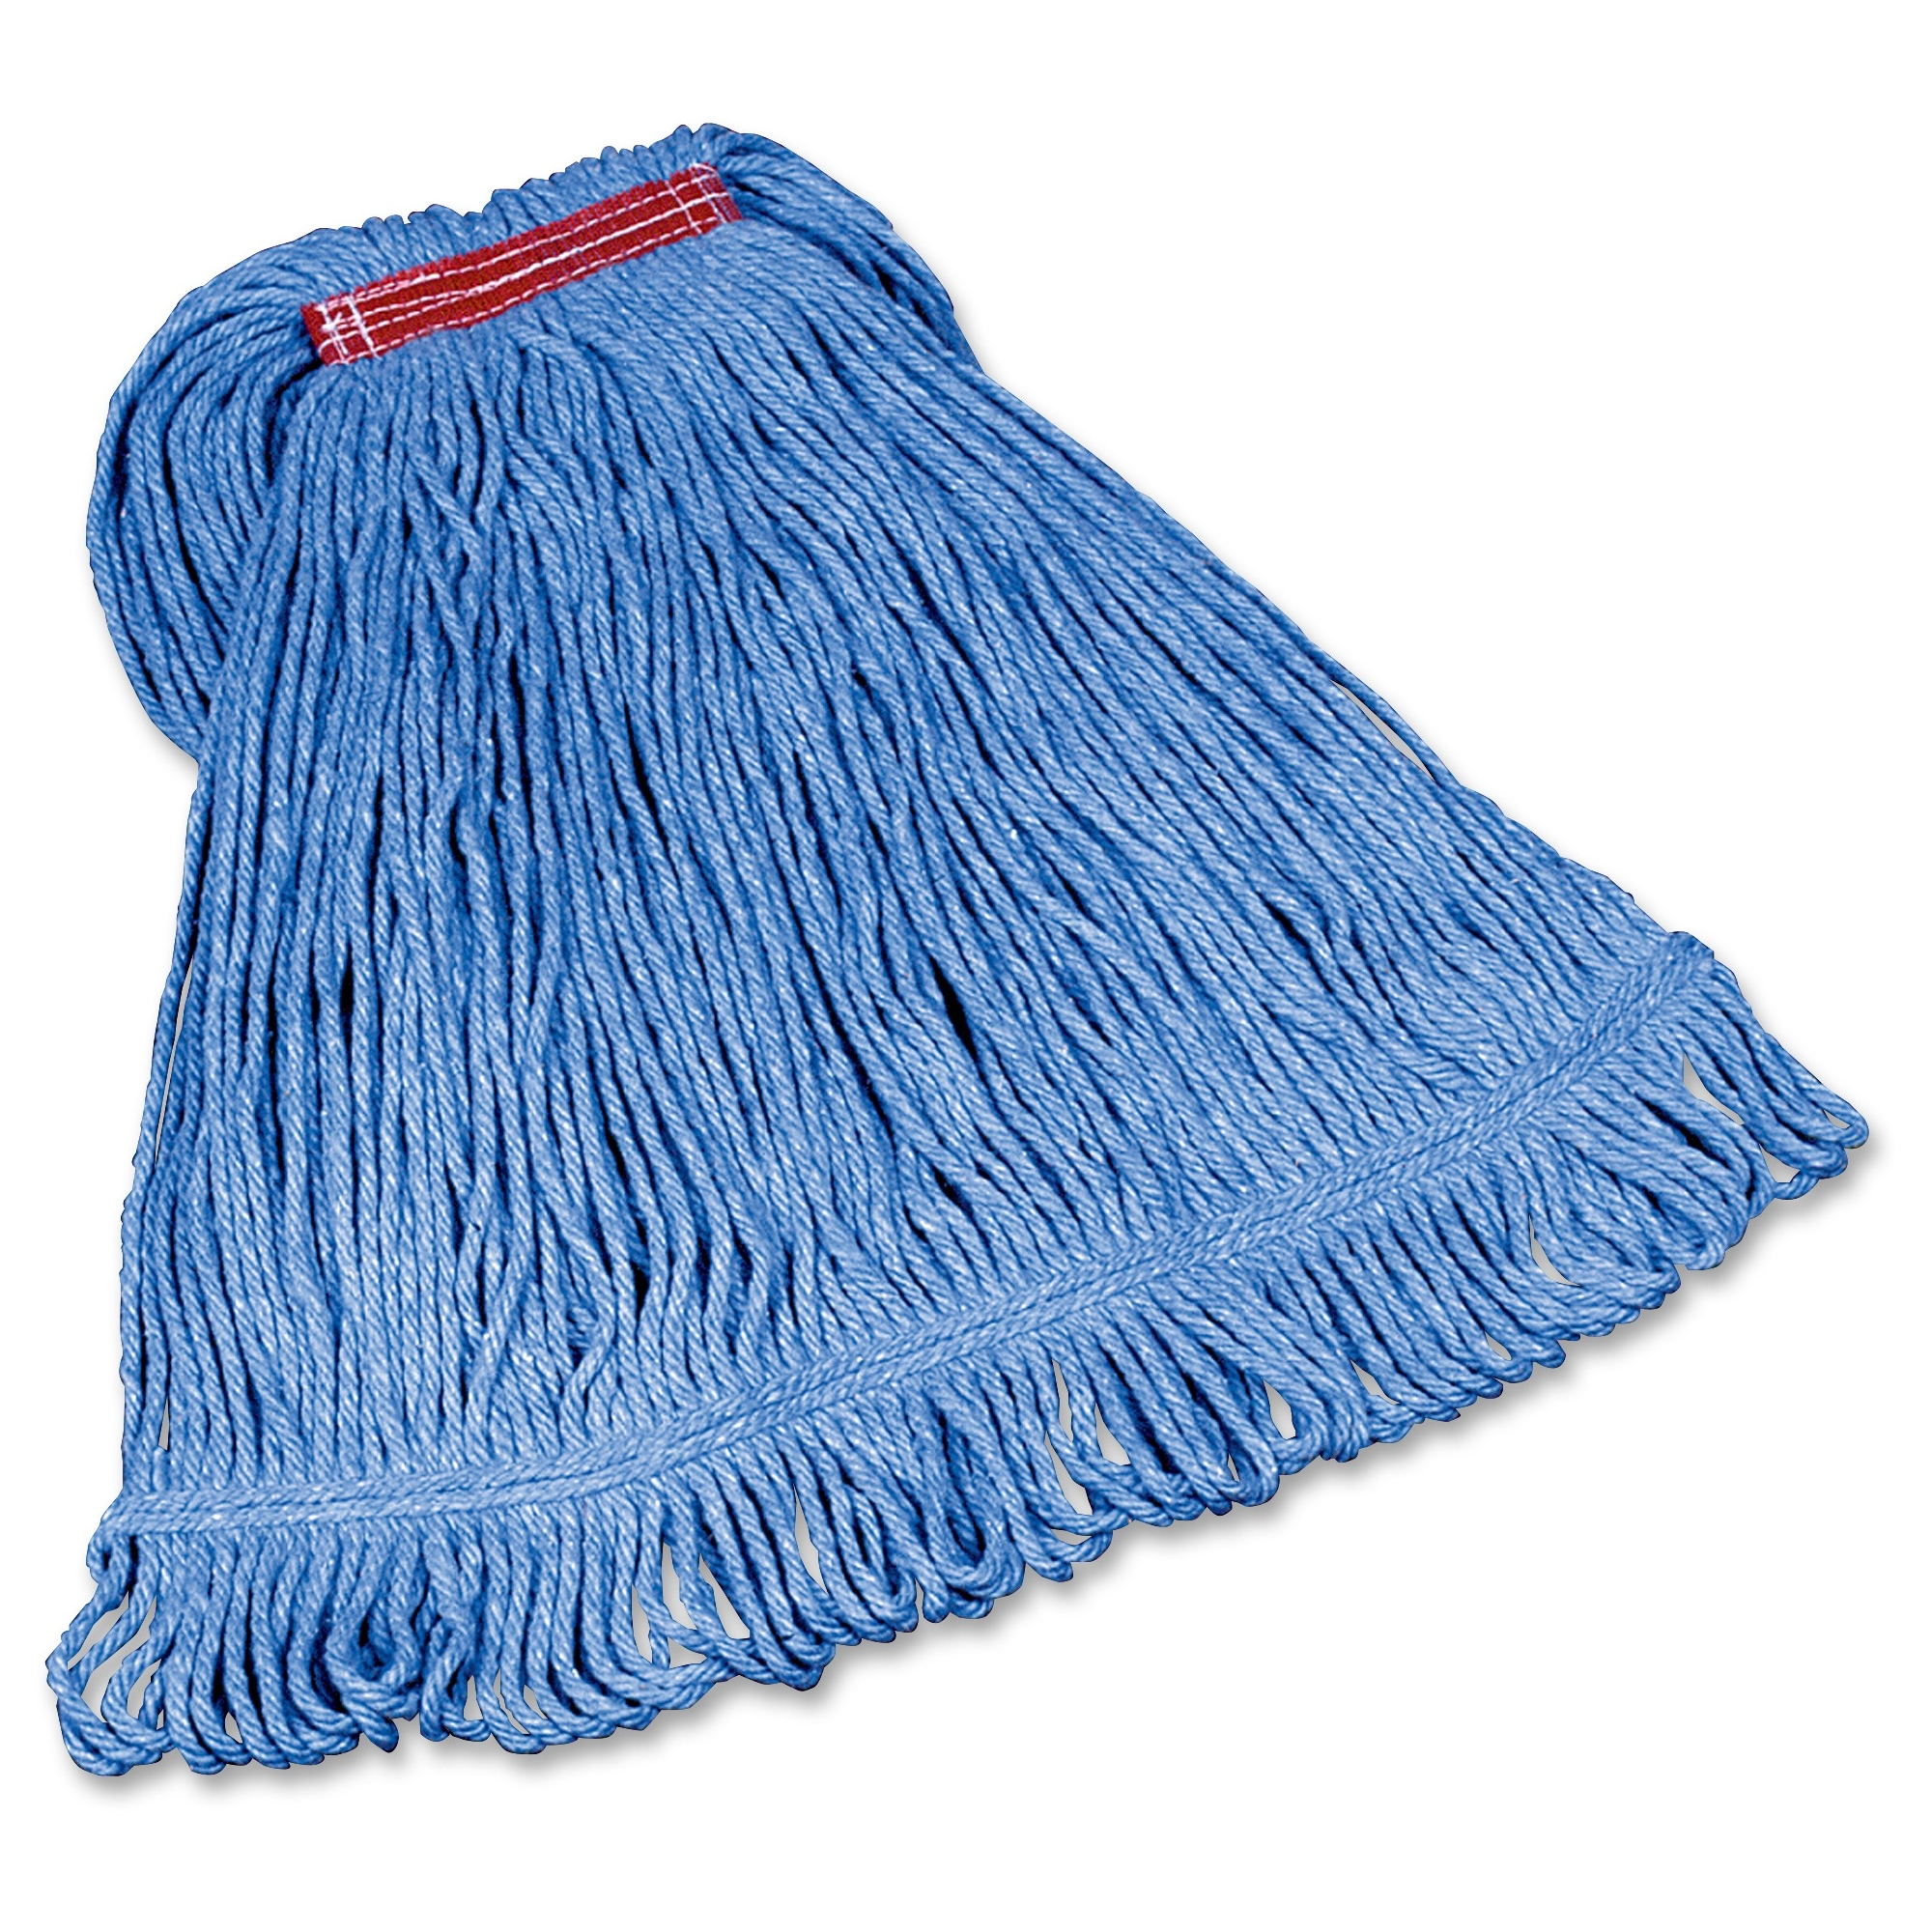 Rubbermaid Commercial Super Stitch Large Blend Mop - Cotton, Synthetic Yarn (d21306bl00ct)